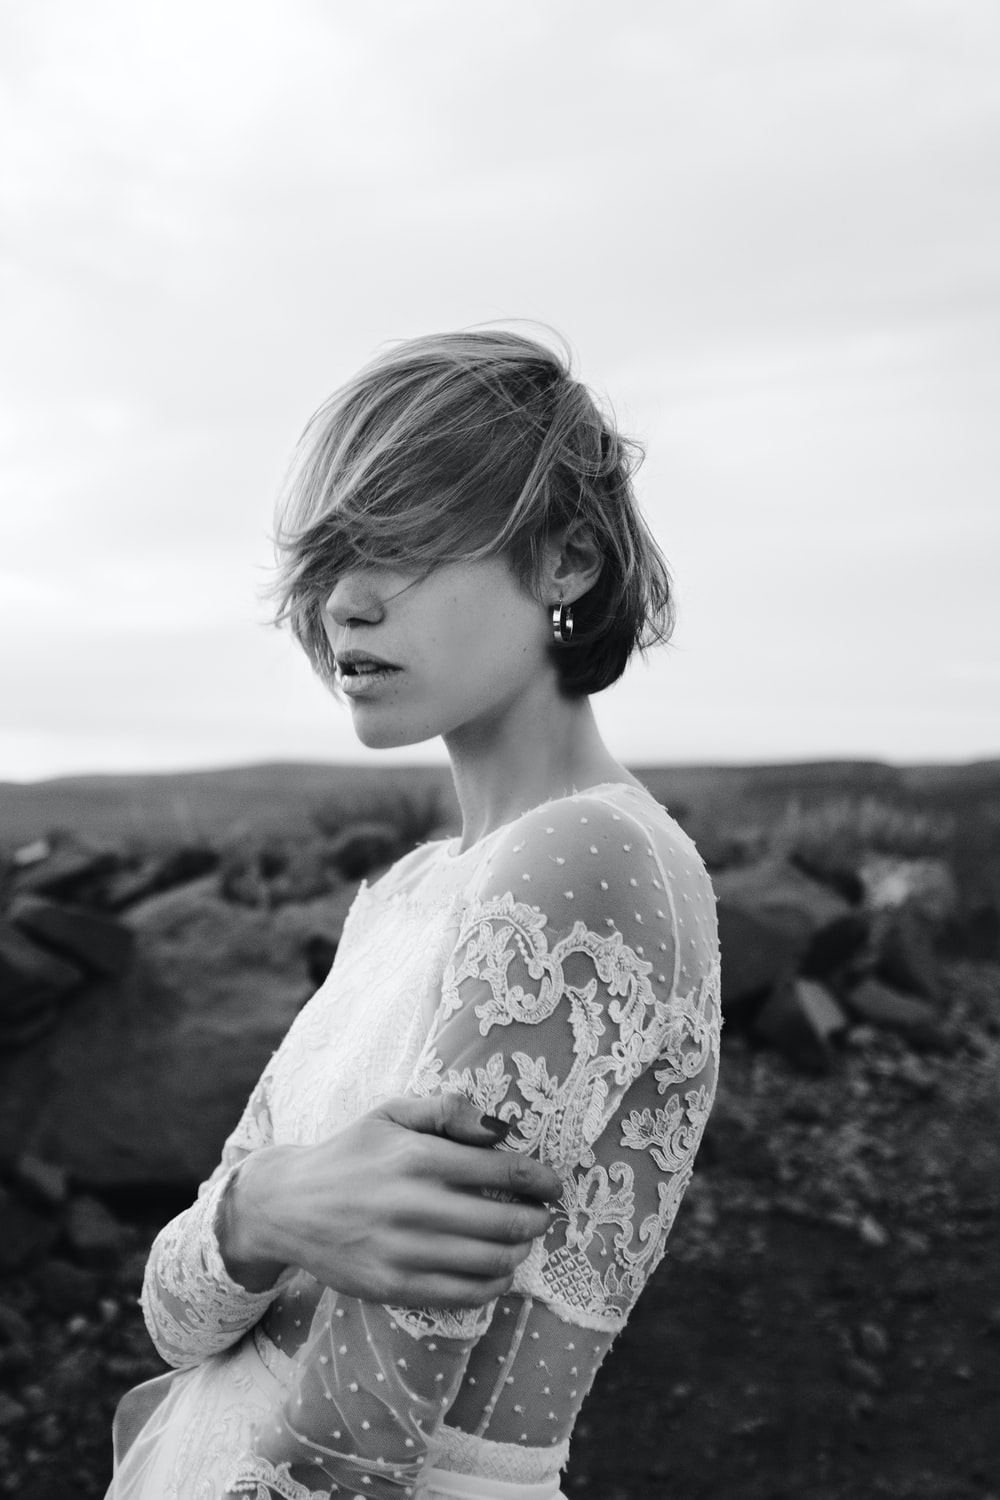 woman in white floral dress standing on rock formation during daytime